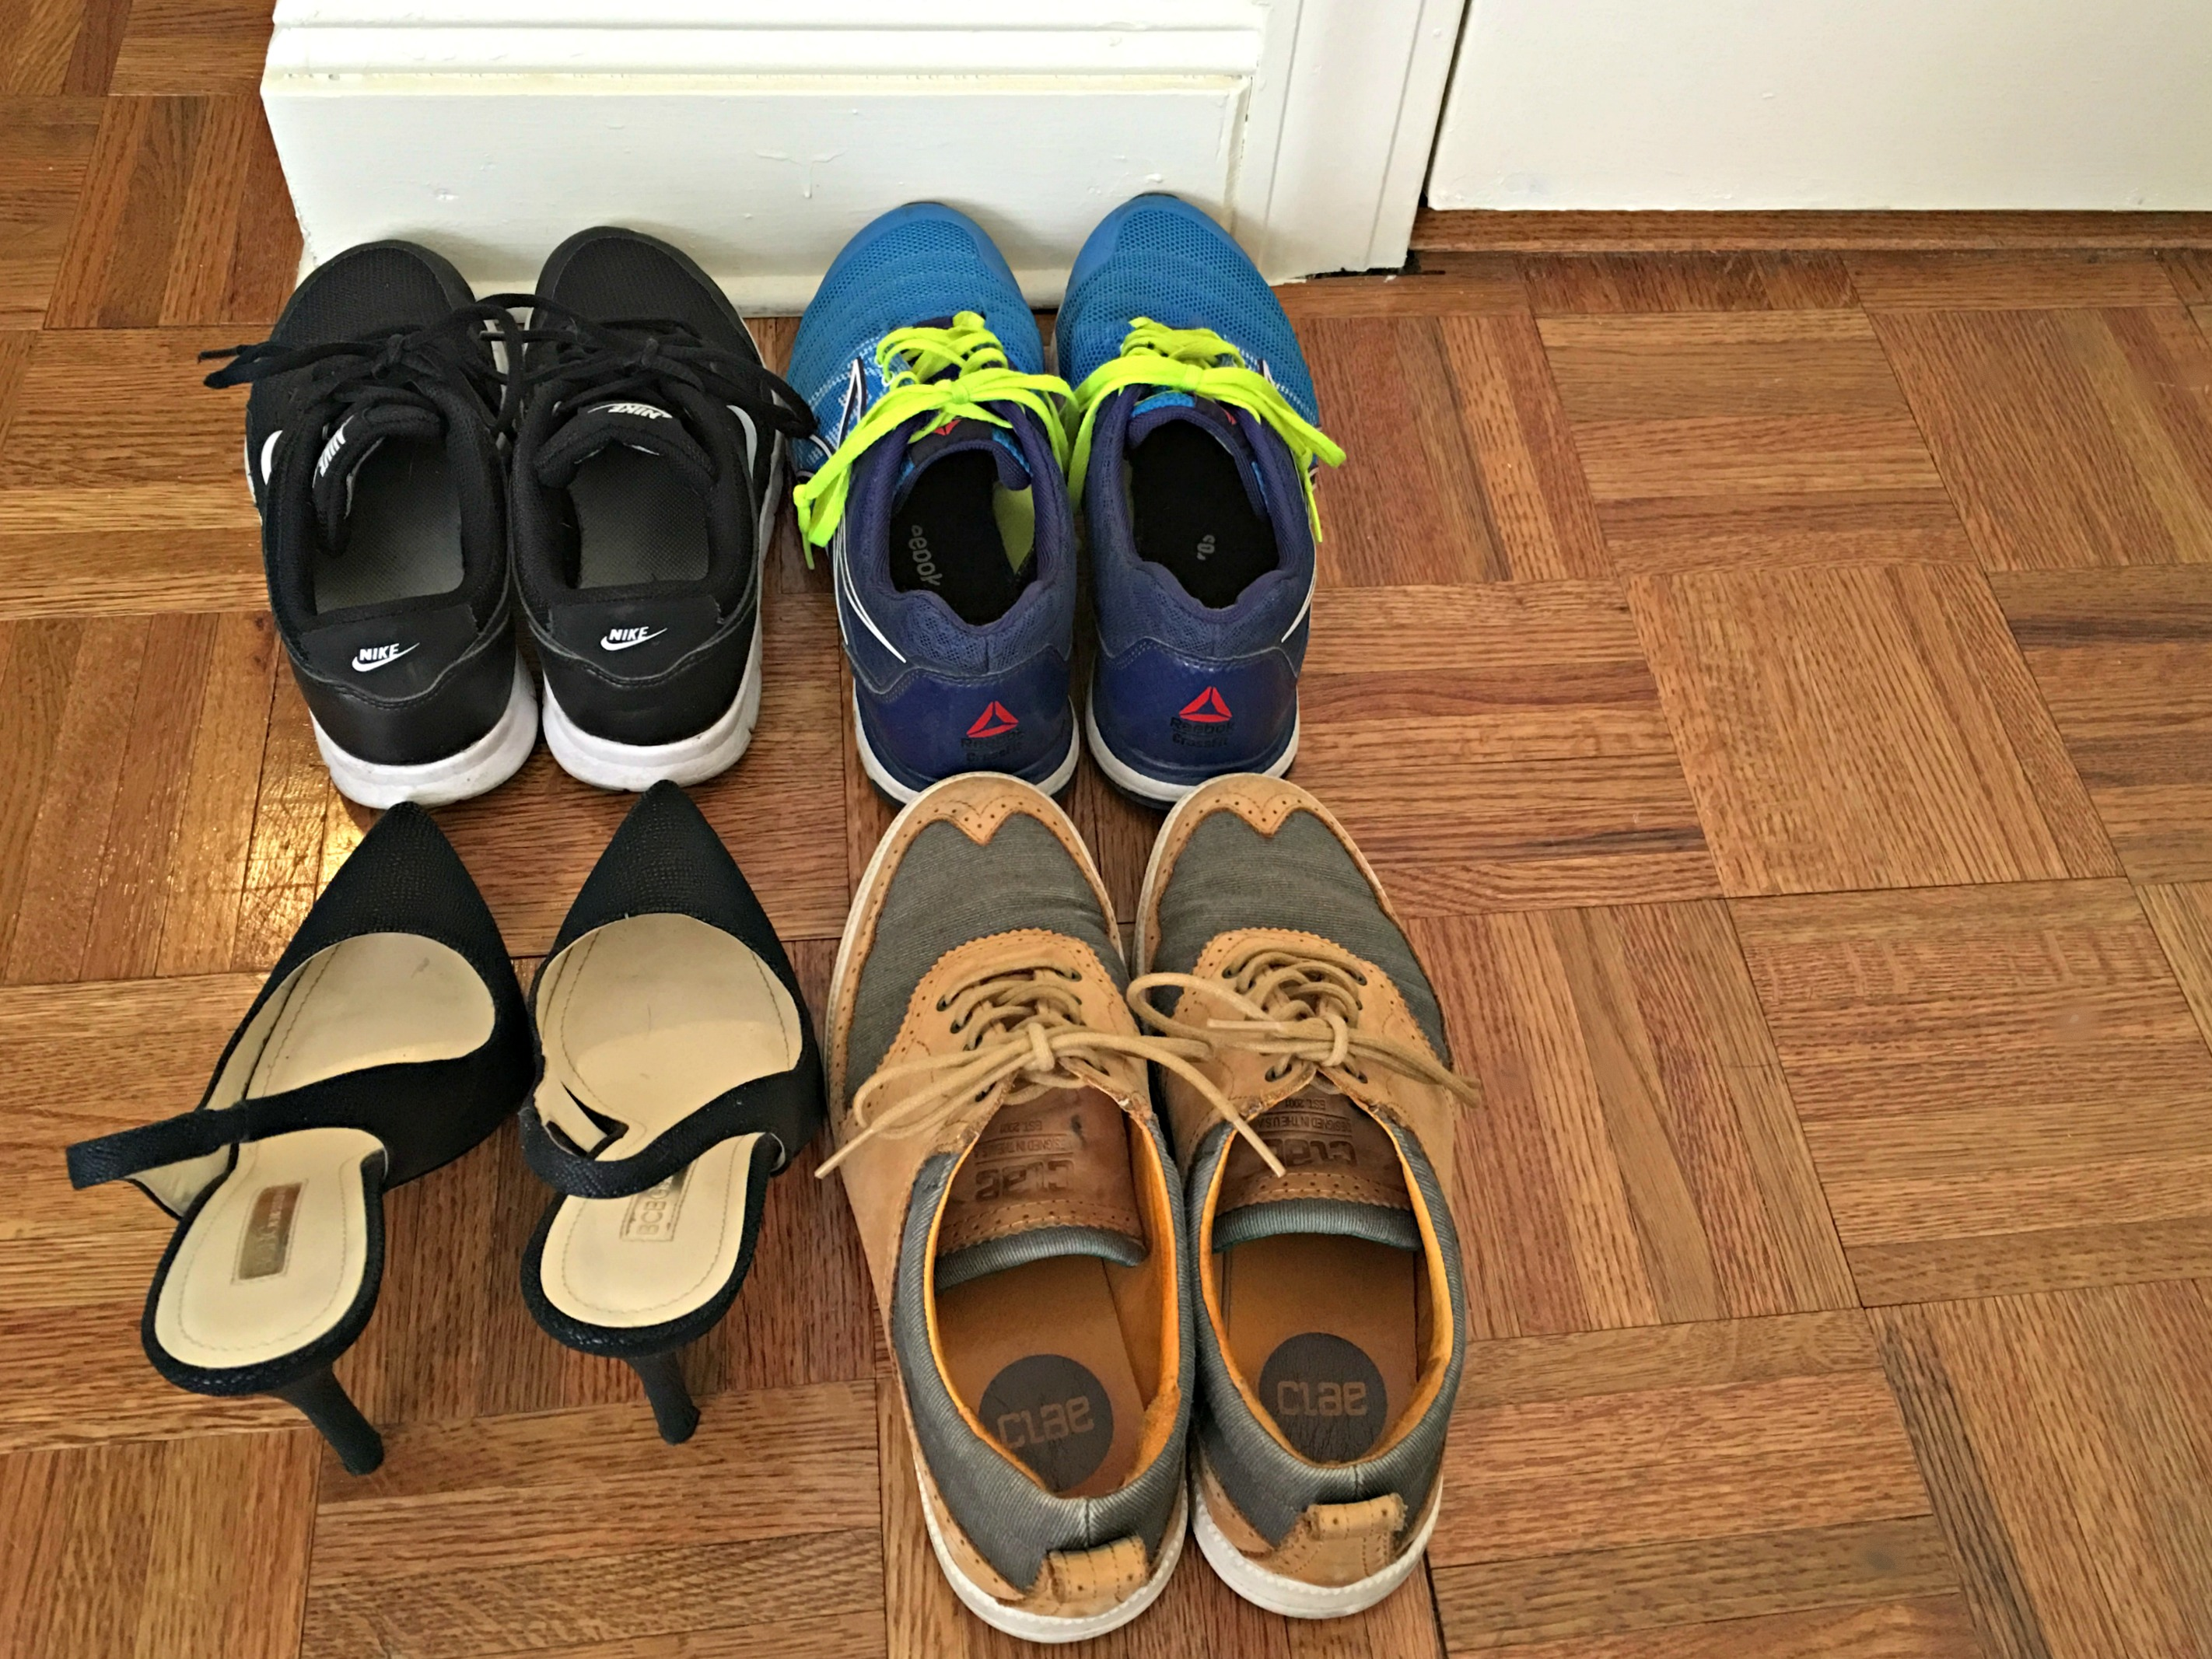 take your shoes off at the front door - cleaning tip